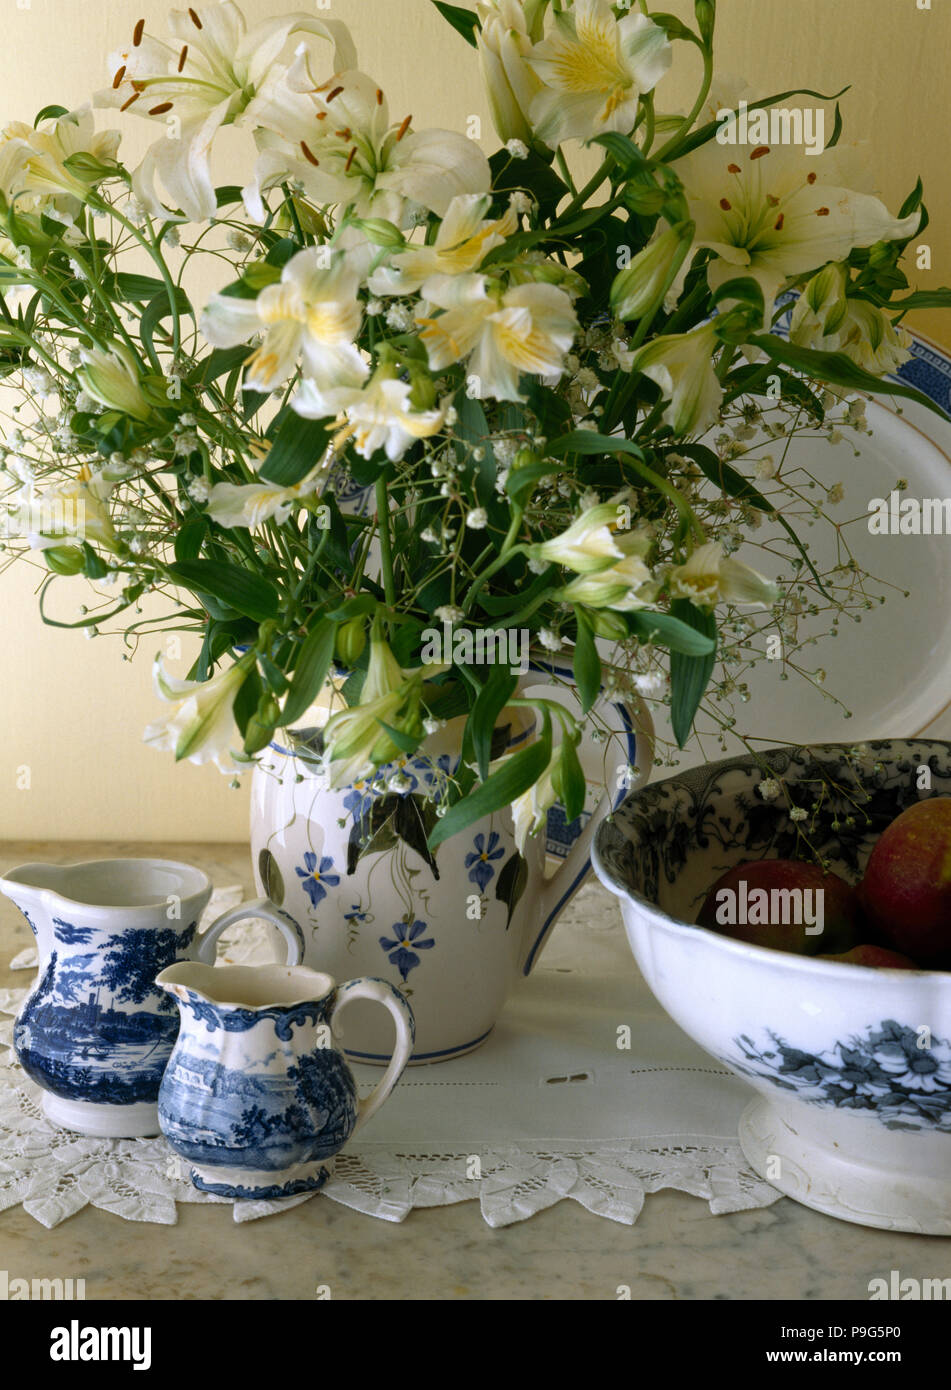 Cream Lilies In Old Blue Patterned Jug On Table With Small Blue And